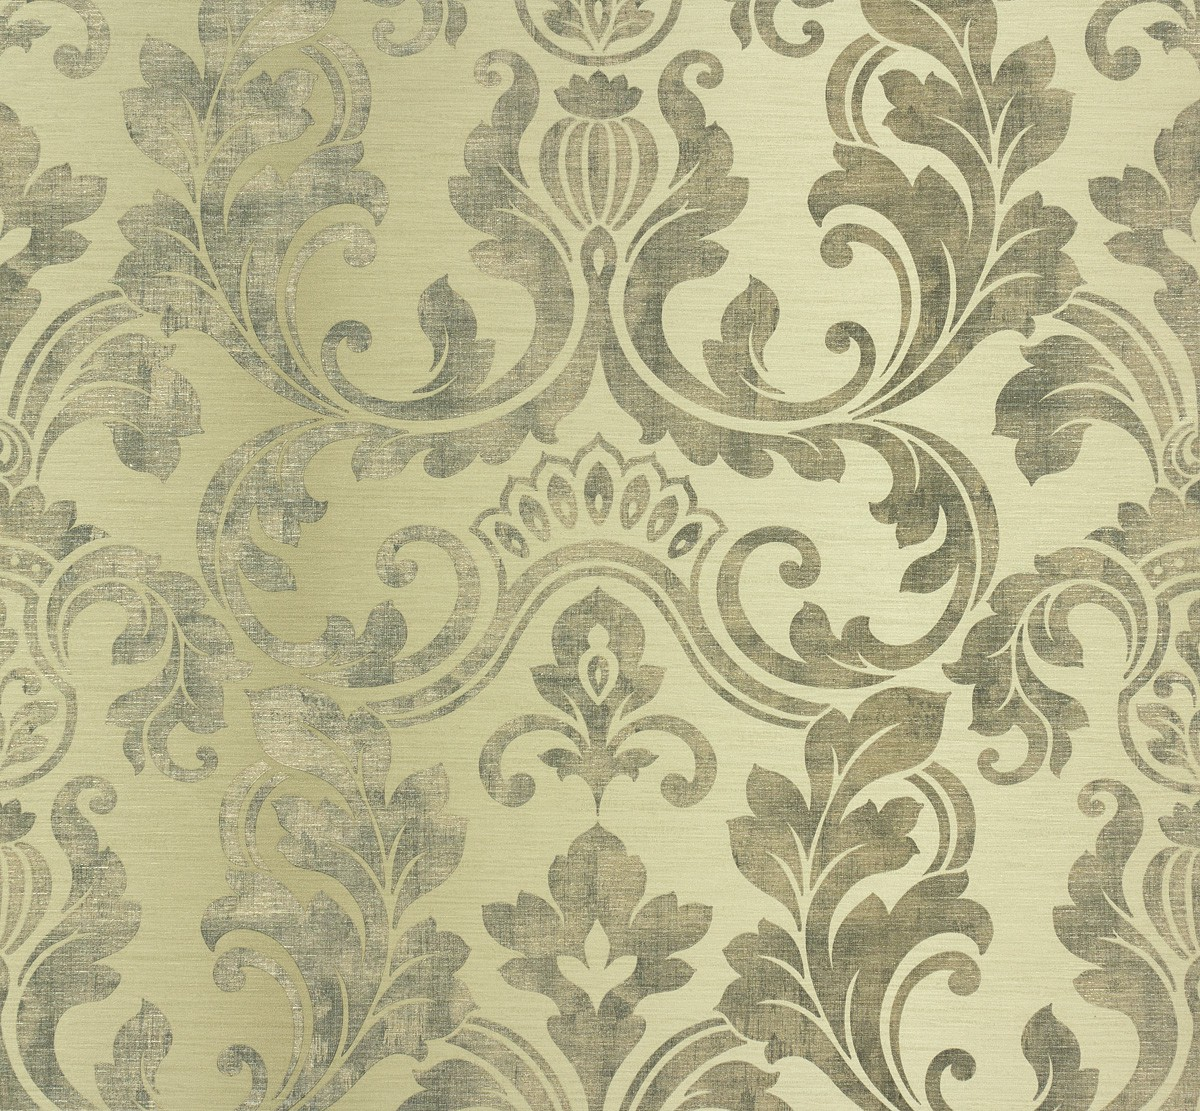 Tapete barock beige creme hollywood as creation 95417 3 for Tapete barock